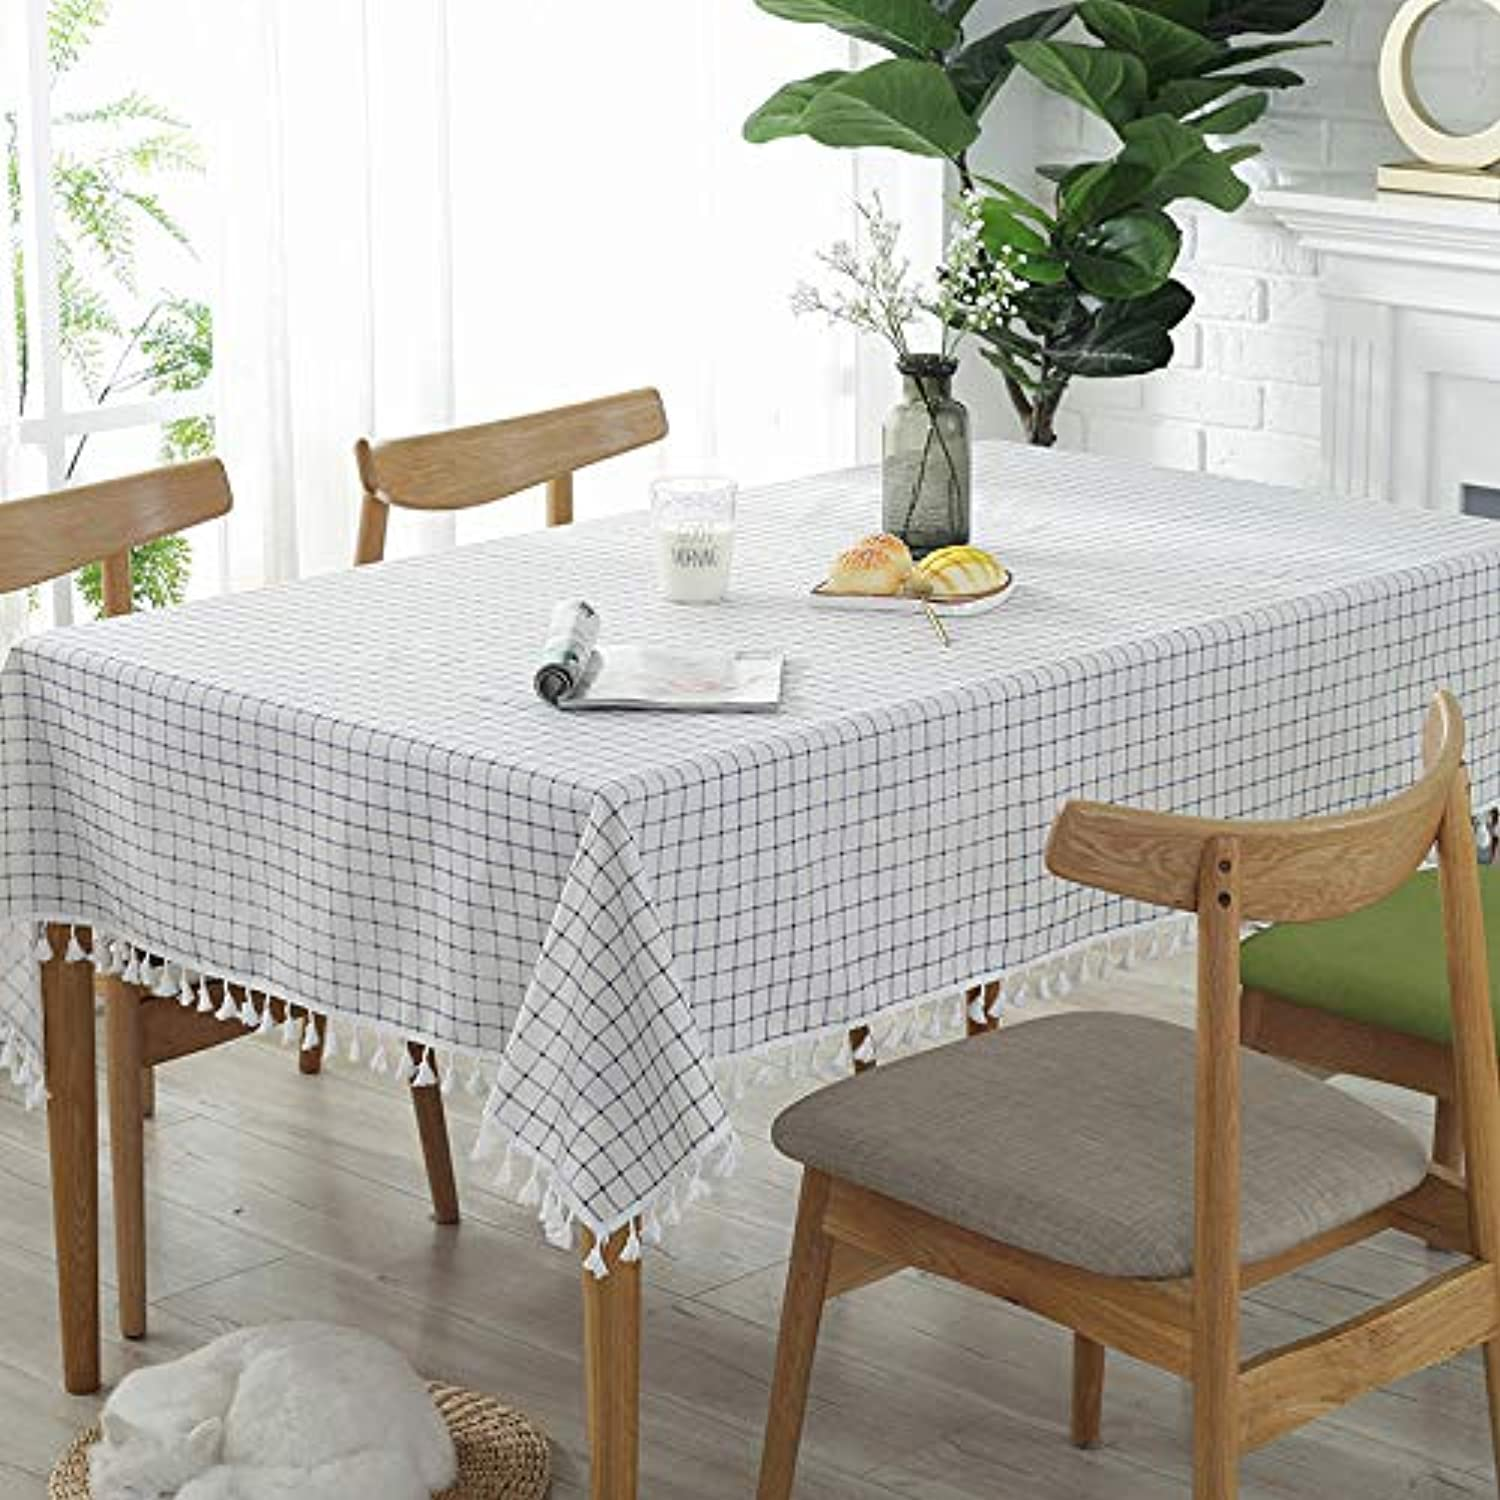 Nordic simple plain plaid fabric tablecloth cotton and linen small fresh rectangular dormitory table cloth coffee table cloth, fabric tablecloth  bluee and white plaid curling, 135135cm suitable squ